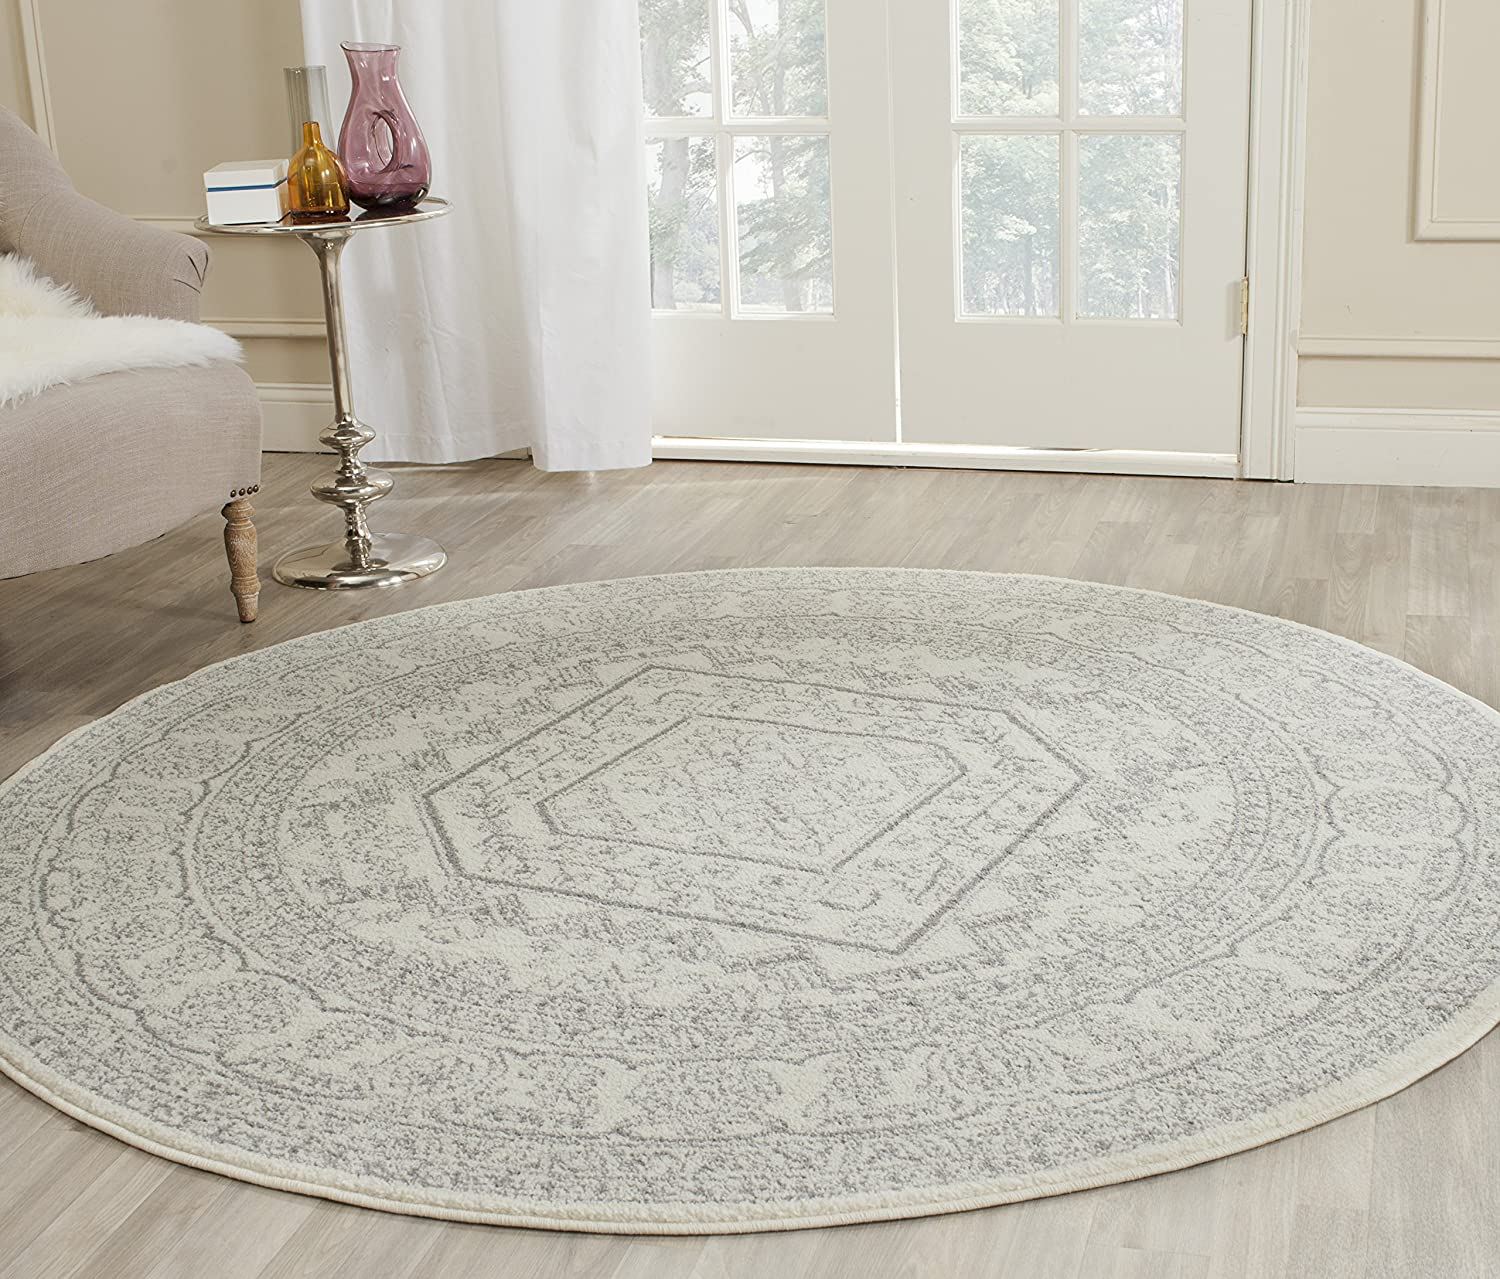 Safavieh Adirondack Collection ADR108B Ivory and Silver Area Rug, 2 Feet 6-Inch by 4 Feet ADR108B-24